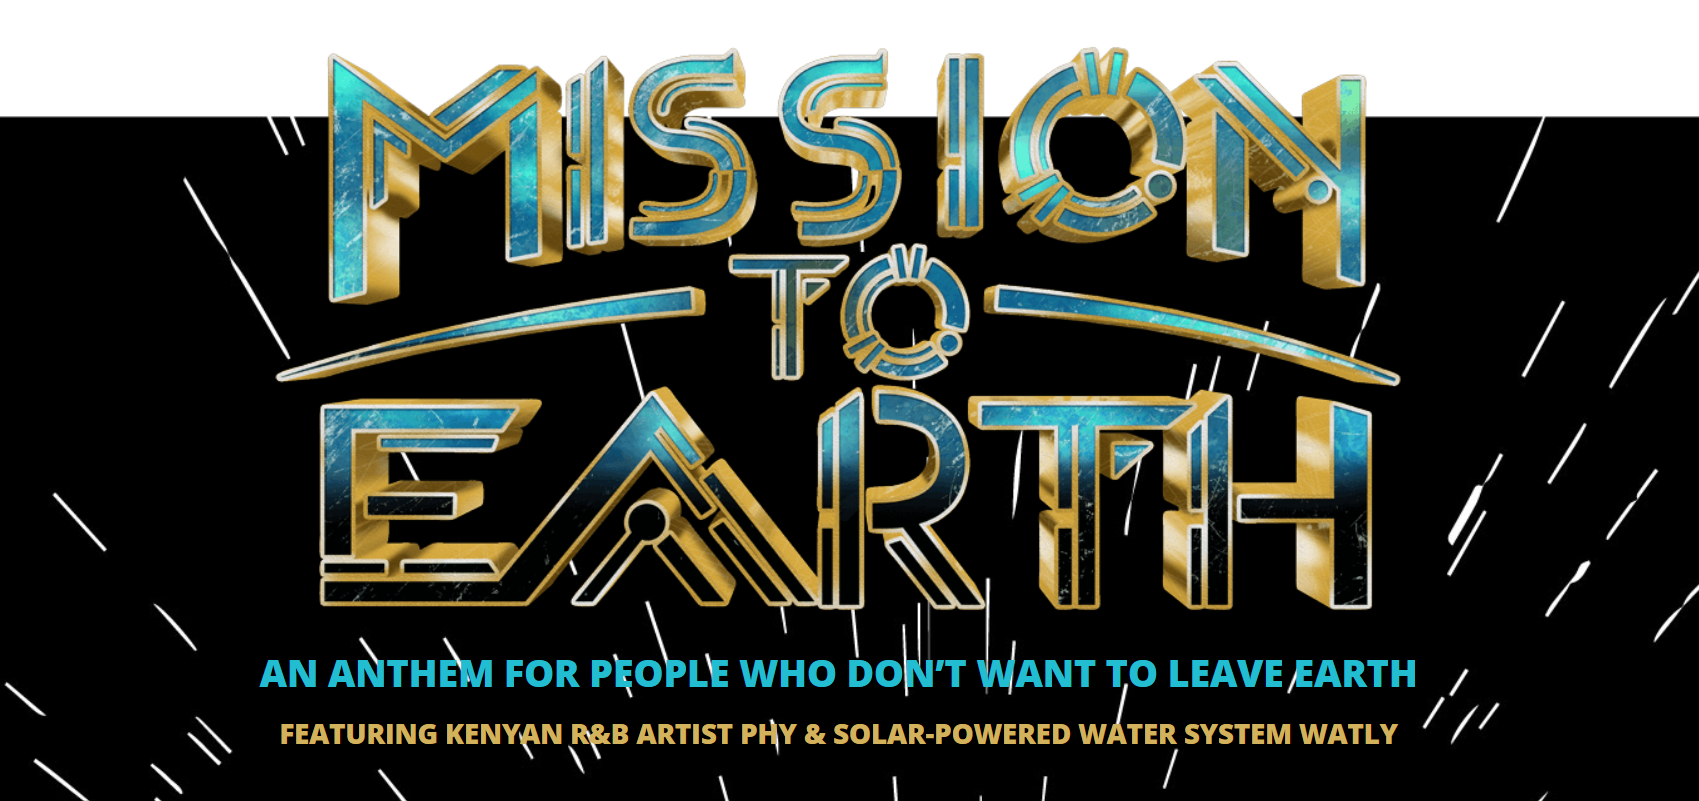 Mission To Earth Text